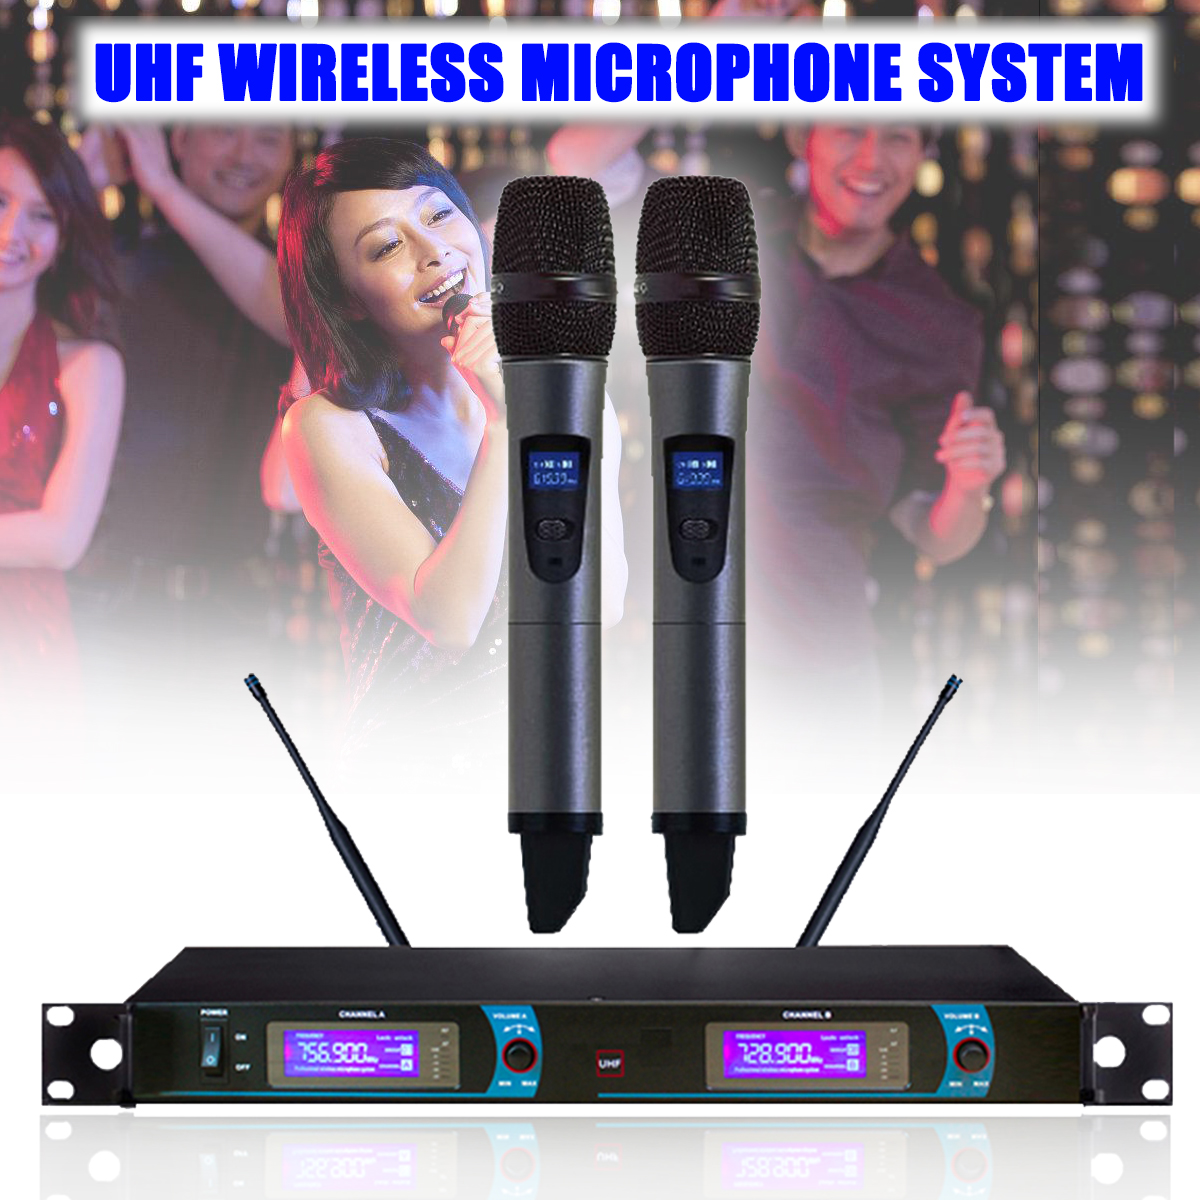 Karaoke DJ Wireless Microphone Profesional LCD Display UHF Wireless Dual Handheld Microphone Mic System Home KTV diy focusable 5w laser module 5 5w laser module 7w high power for cnc cutter laser engraving machine 2w 2 5w laser module 445nm